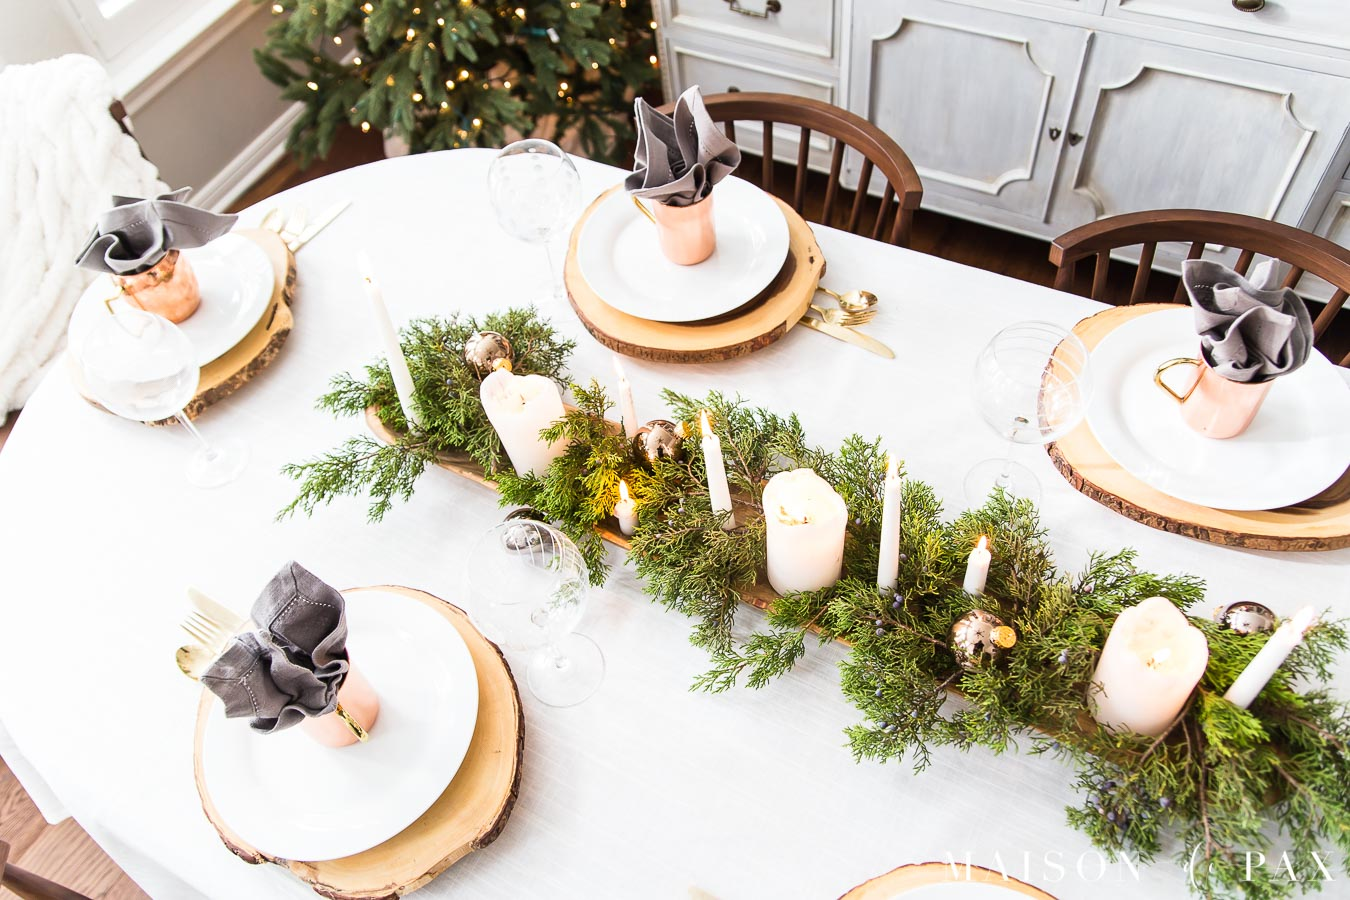 rustic wood log slice chargers under simple white plates create a rustic modern tablescape for the holidays